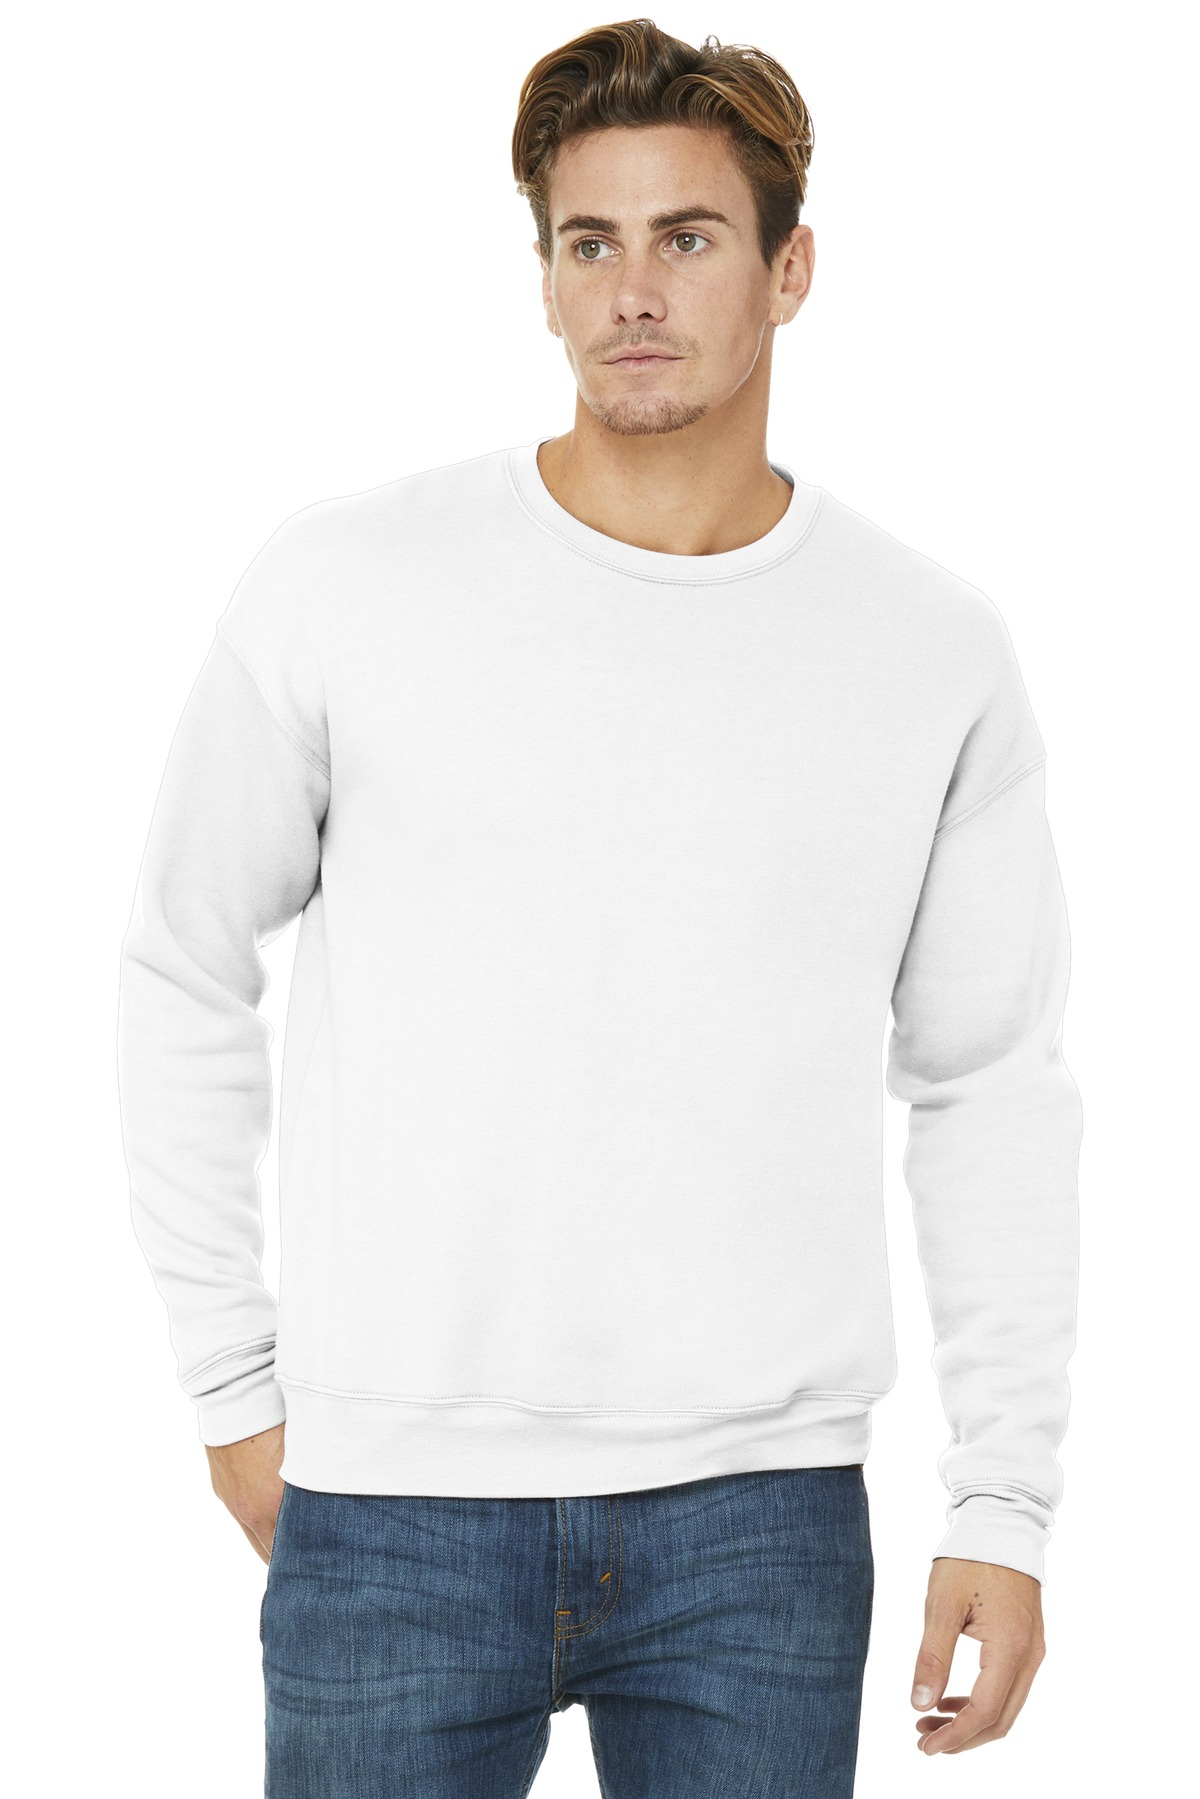 BELLA+CANVAS  ®  Unisex Sponge Fleece Drop Shoulder Sweatshirt. BC3945 - White